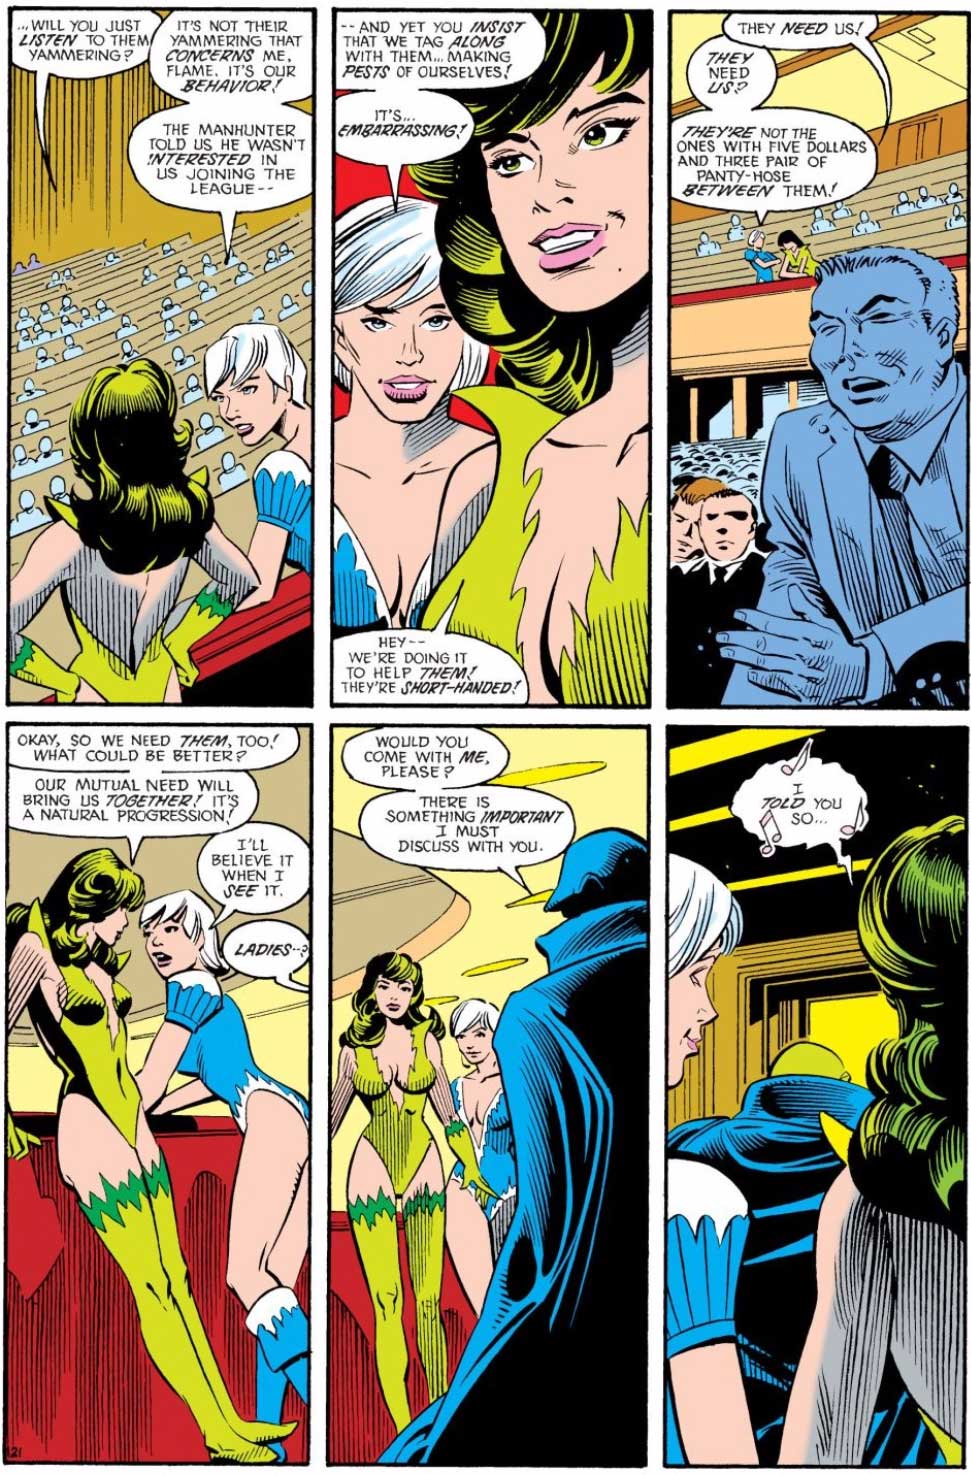 Justice League International #14 by J.M. DeMatteis, Keith Giffen, Steve Leialoha and Al Gordon